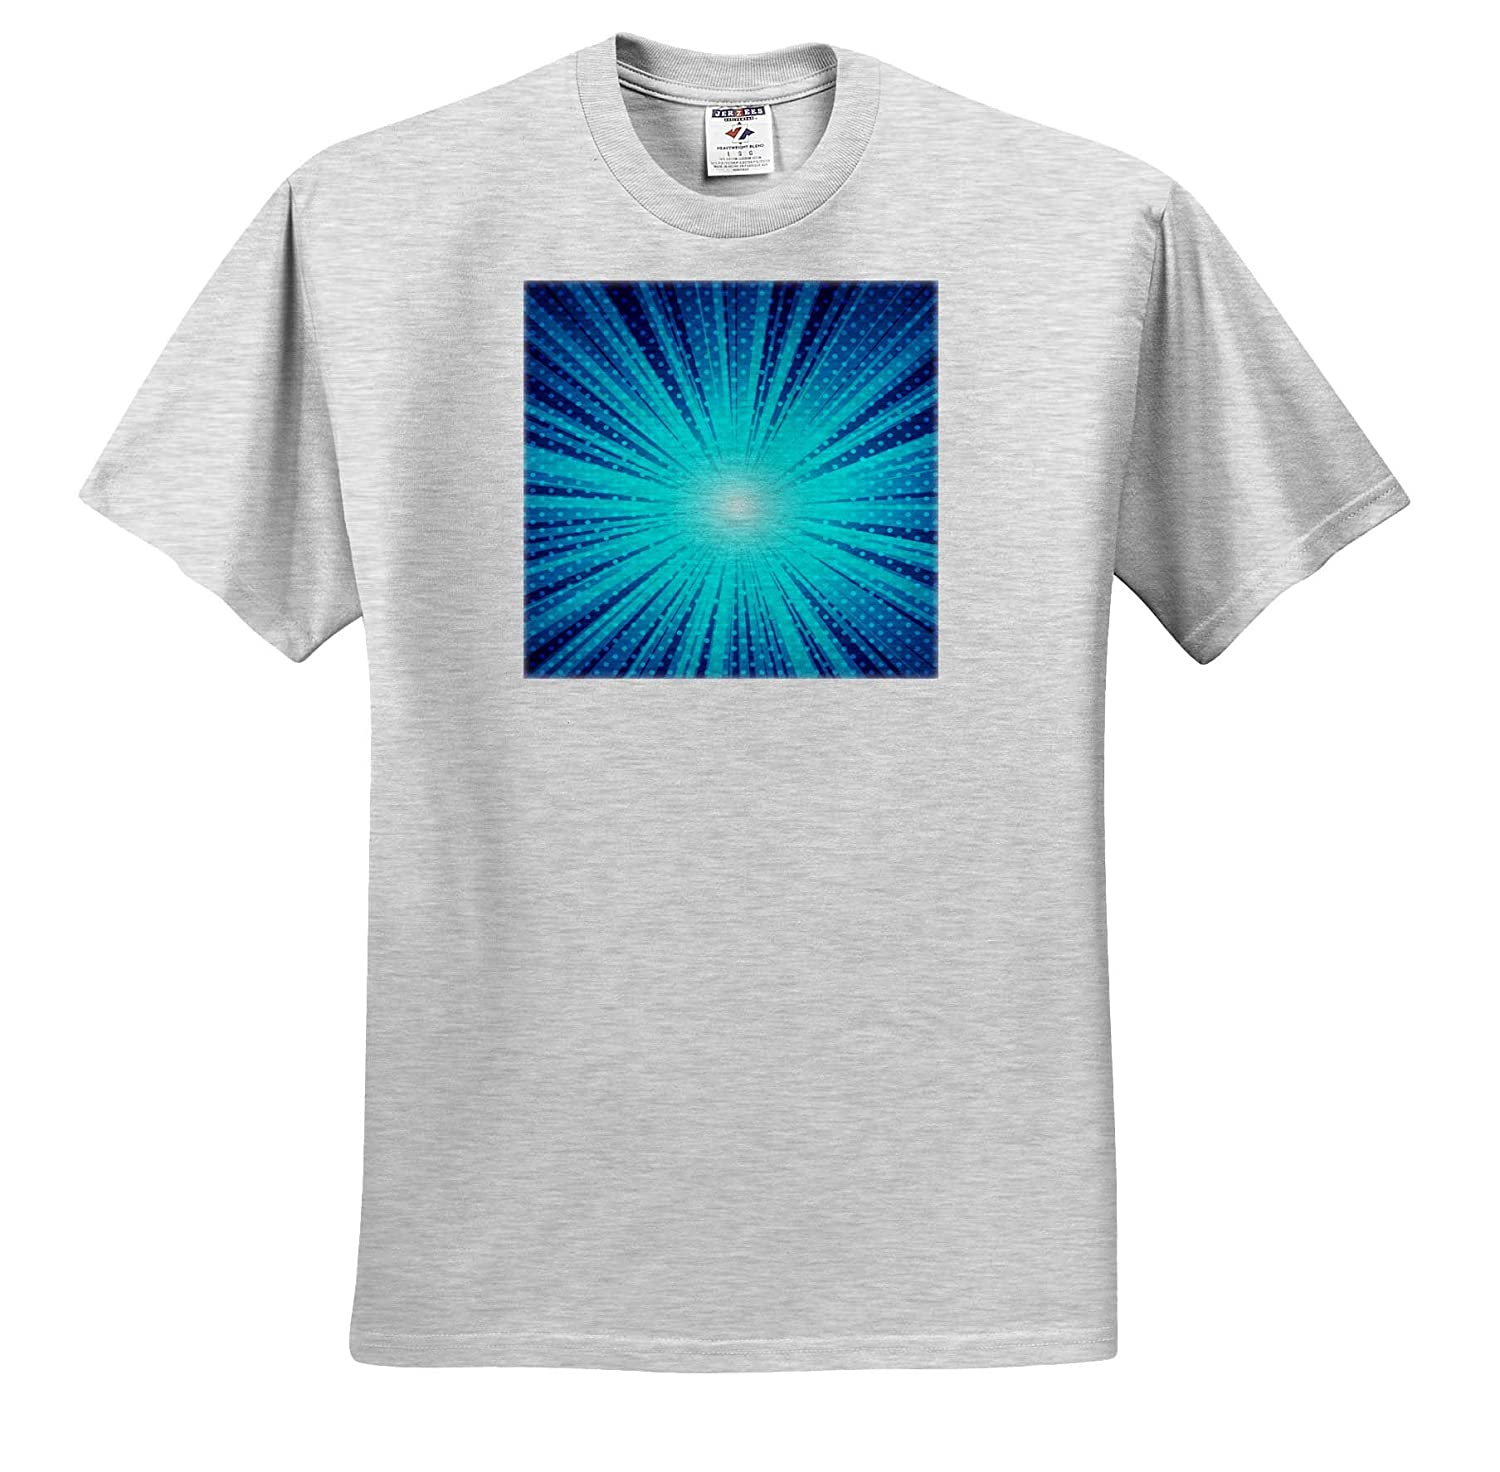 T-Shirts 3dRose Sven Herkenrath Art Spacy Blue and Green Artwork with Many Lights in The Front